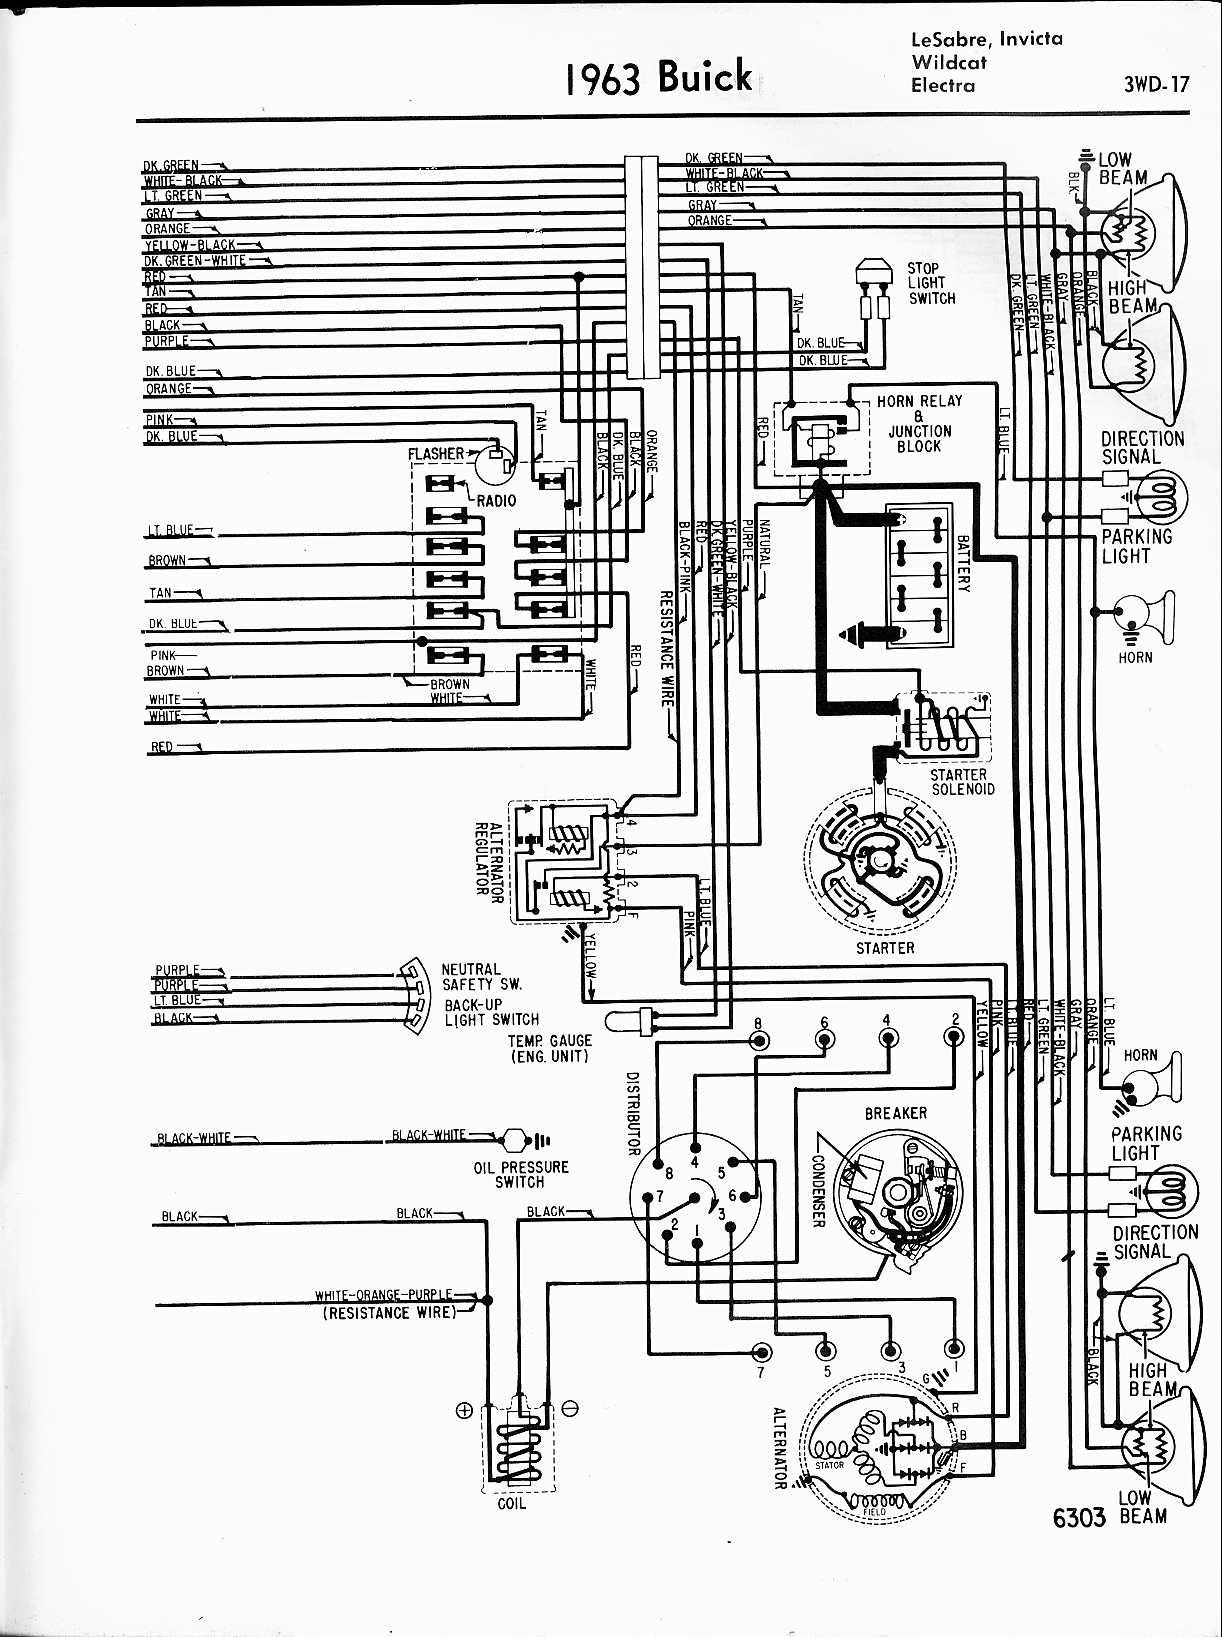 1947 buick wiring diagram    buick       wiring       diagrams    1957 1965     buick       wiring       diagrams    1957 1965